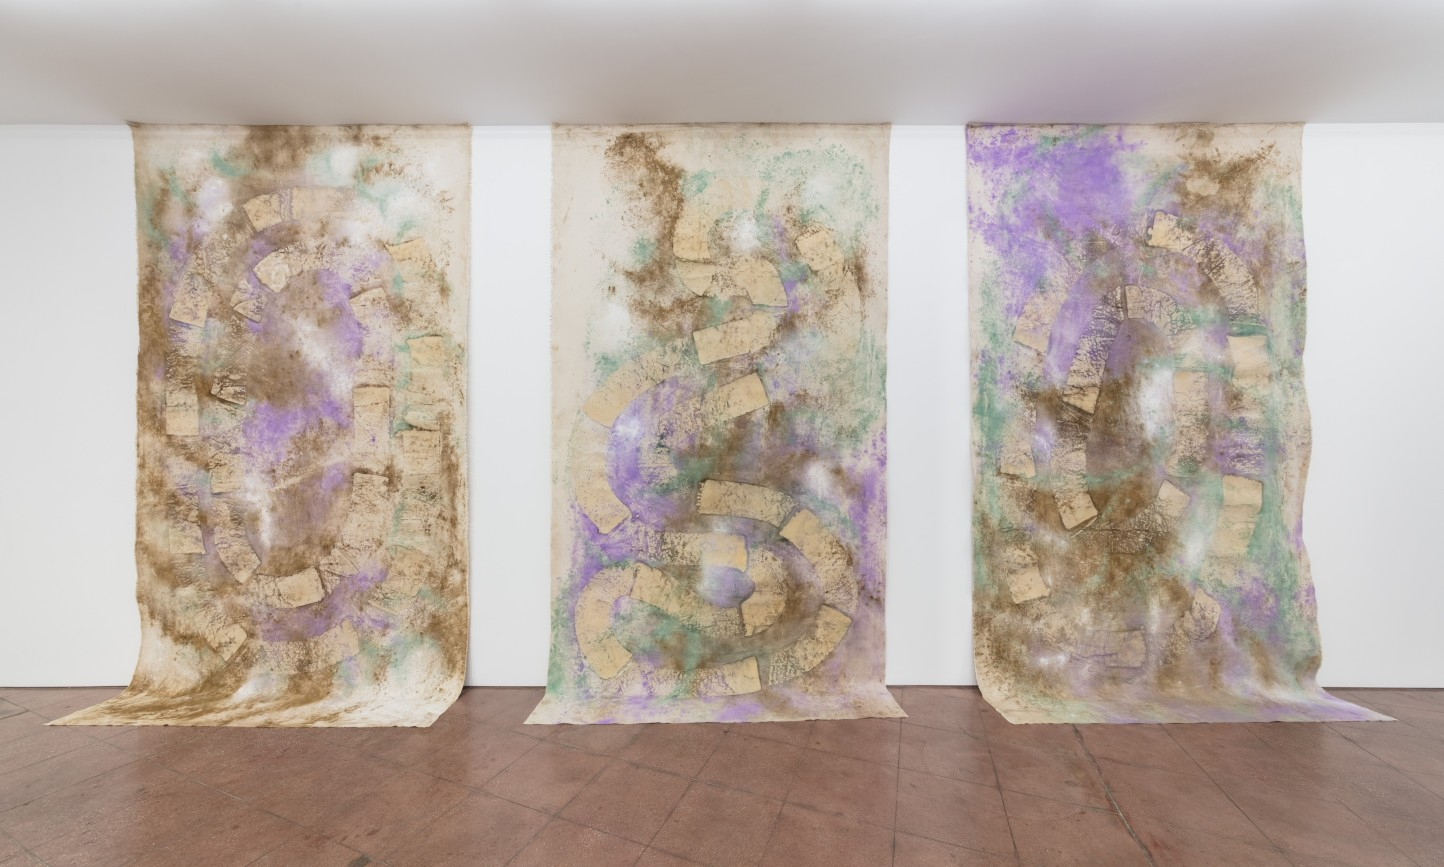 Jessica Warboys 3x River Wax Painting (Snake, Shape, Lake), 2019 Mineral pigment and beeswax on canvas in three (3) parts Part 1: 383 x 208 cm 150 3/4 x 81 7/8 in Part 2: 381 x 208 cm 150 x 81 7/8 in Part 3: 378 x 208 cm 148 7/8 x 81 7/8 in